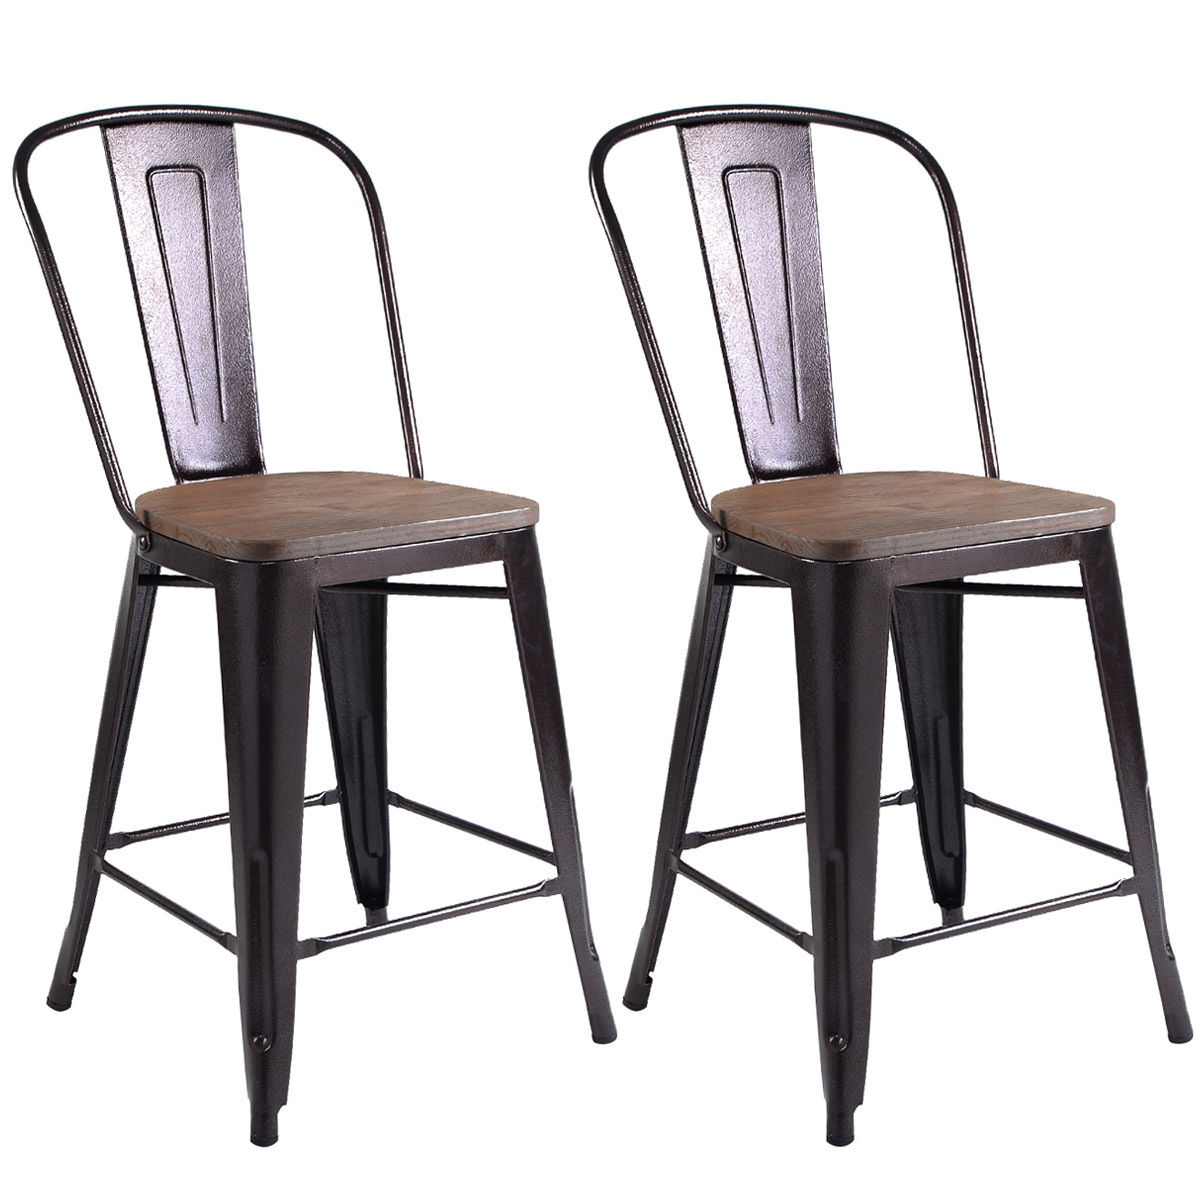 kitchen dining chairs outdoor stainless steel cabinet doors copper set of 2 metal wood bar stool tolix style 0dd1a3a3 a457 423c aaa1 6345a055d566 1 9ef01df48b7592c3d22e95b4baebb5a7 jpeg odnbg ffffff